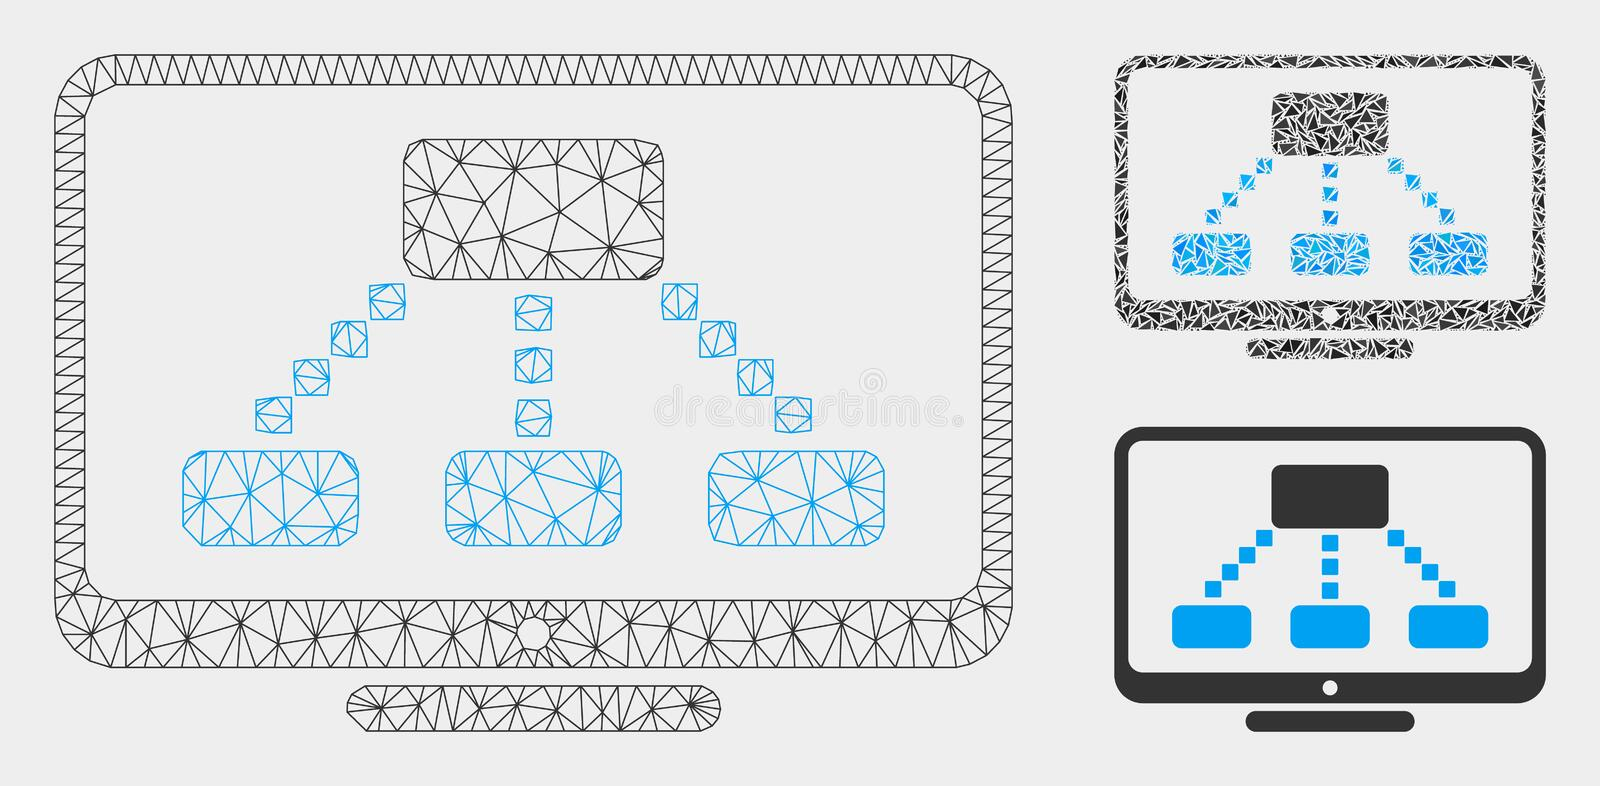 Hierarchy Monitor Vector Mesh Wire Frame Model and Triangle Mosaic Icon stock illustration